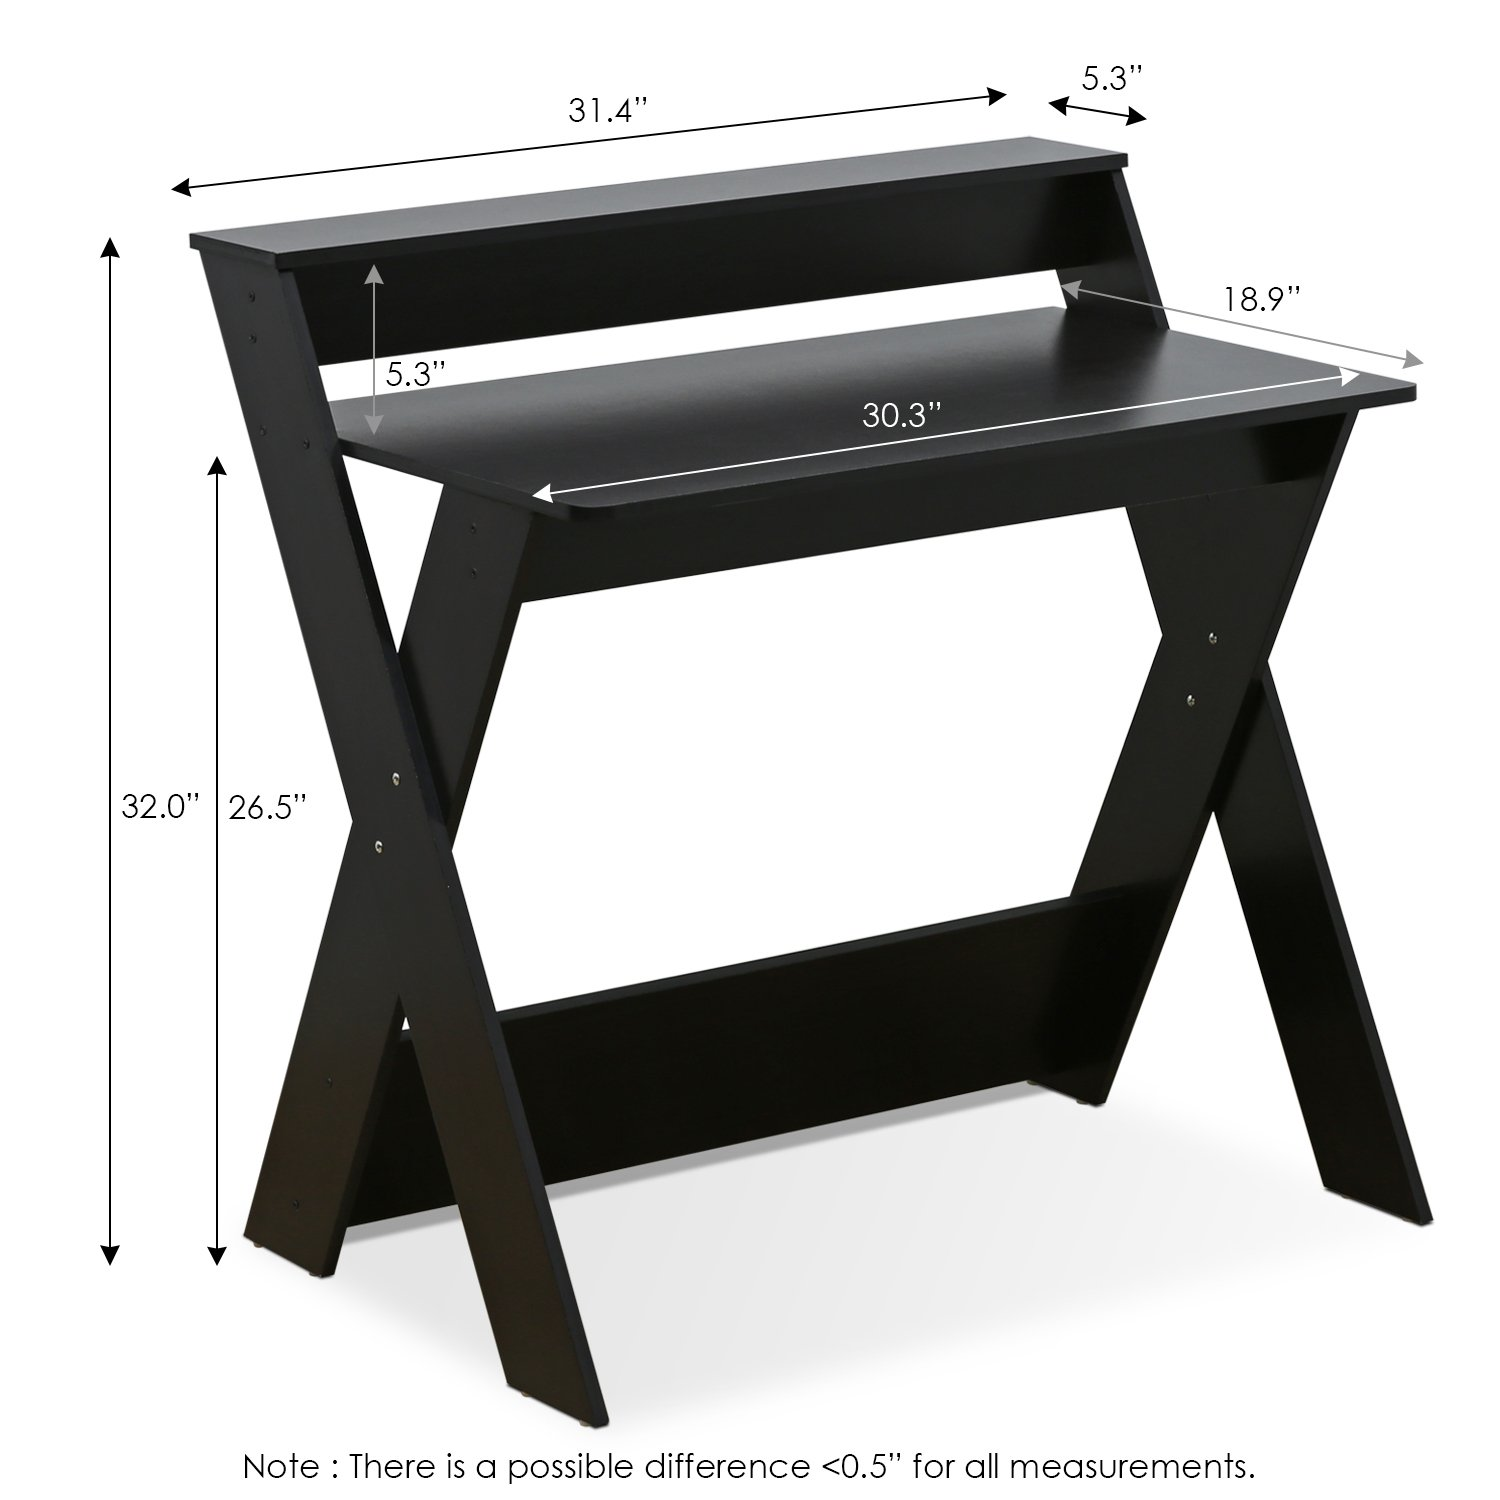 Furinno 16047EX Simplistic Criss-Crossed Home Office Study Desk by Furinno (Image #2)